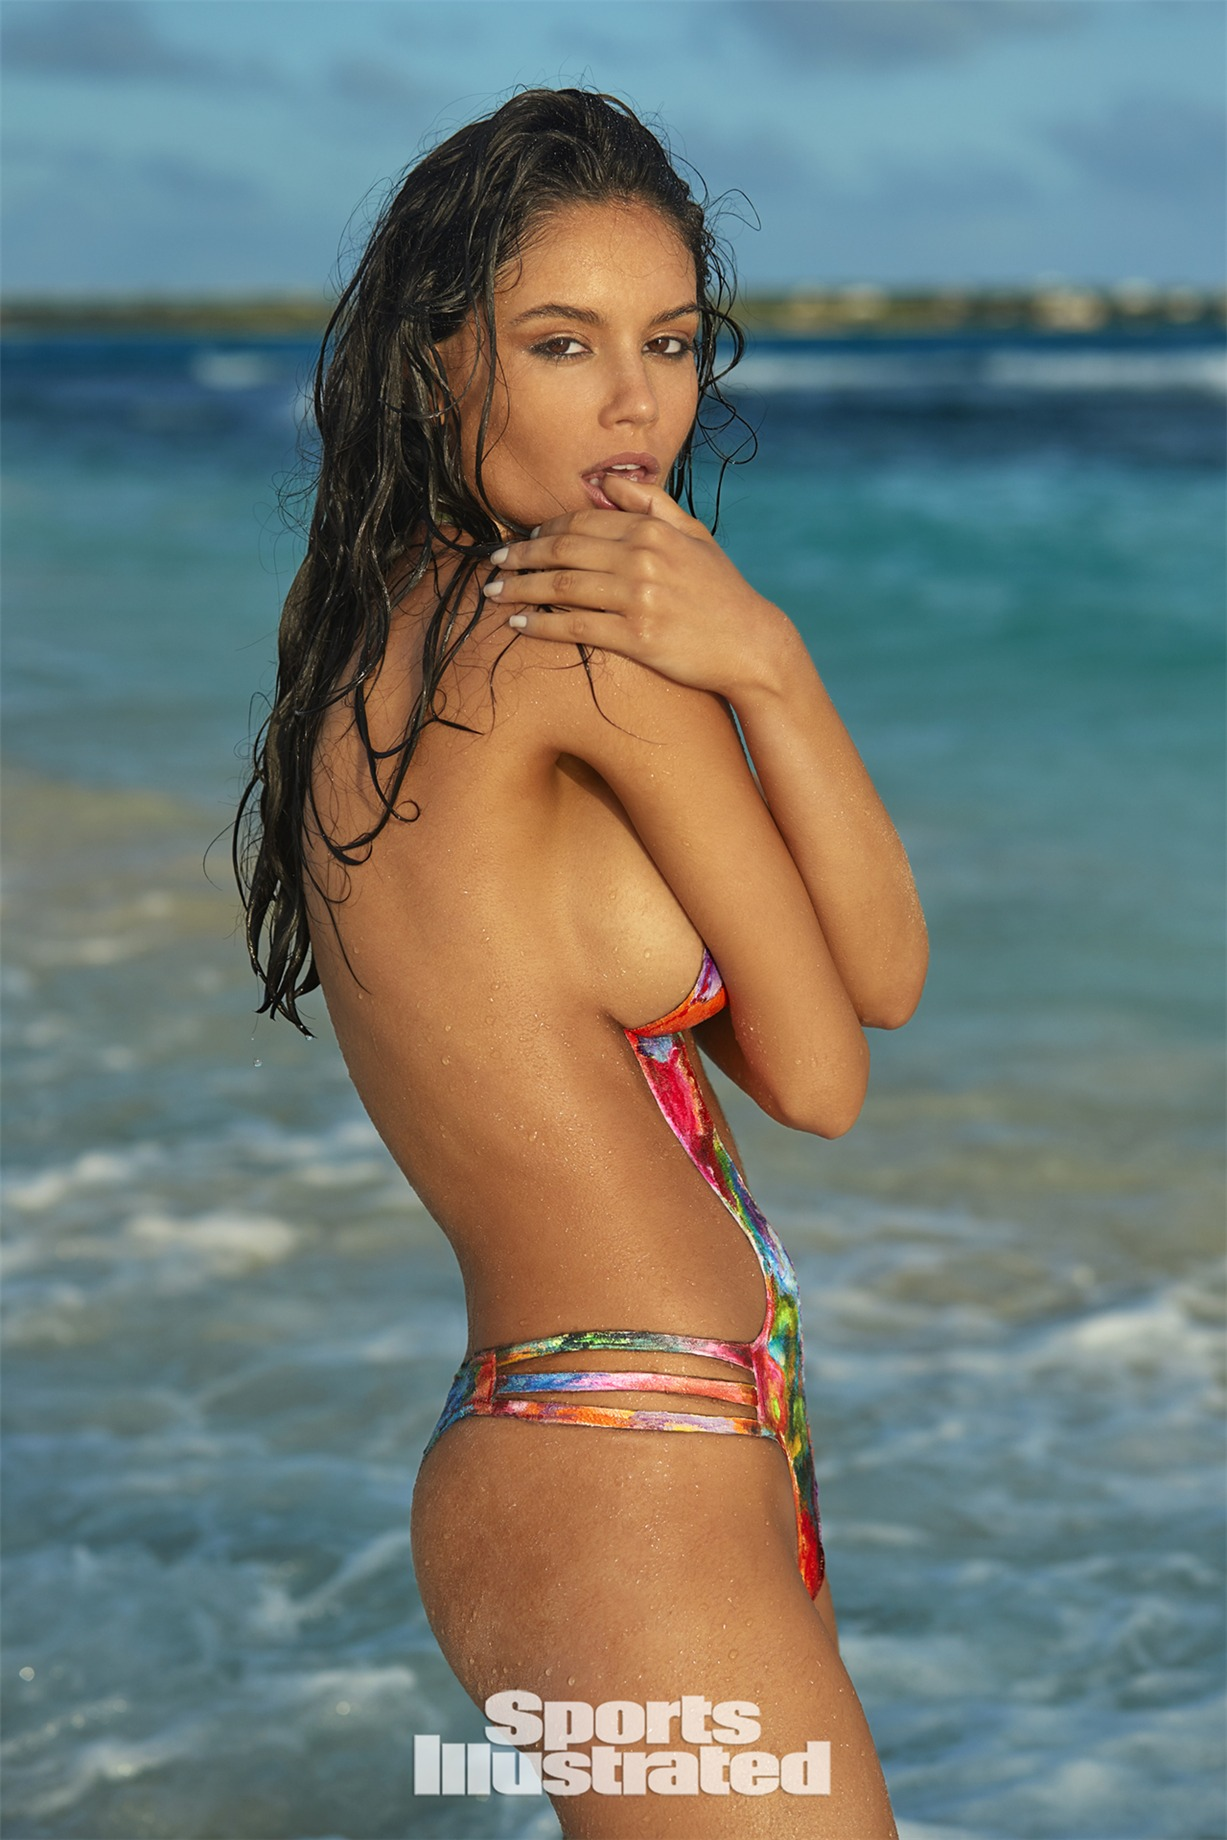 Anne de Paula / Энни ди Паула в боди-арт-купальнике - Sports Illustrated Swimsuit 2017 issue / in Anguilla by Josephine Clough